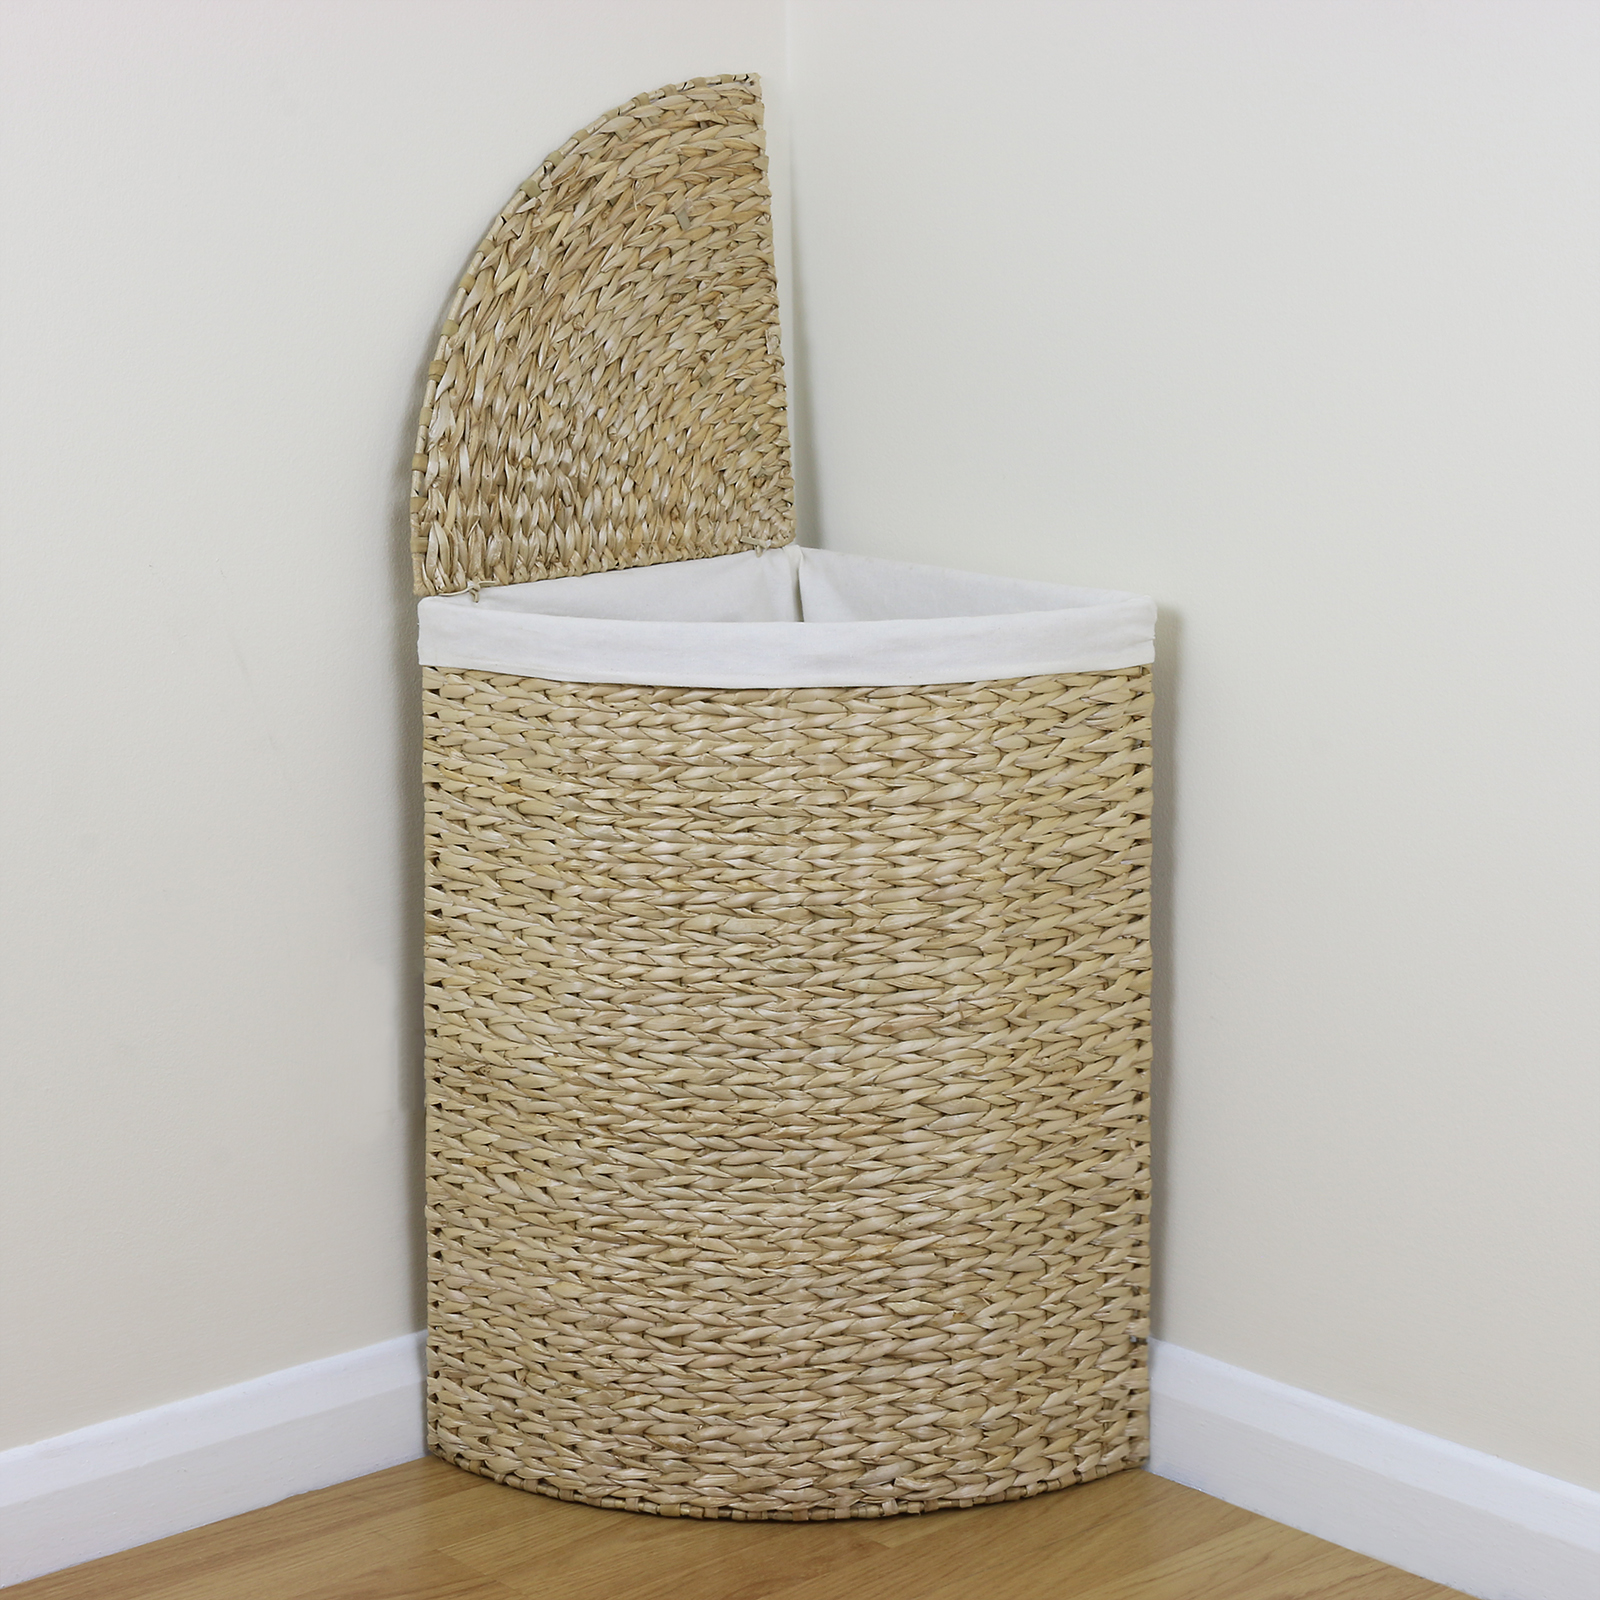 Charmant Sentinel Corner Woven Laundry Basket Cloth Lining Lid Hamper Bin Wicker  Washing Storage